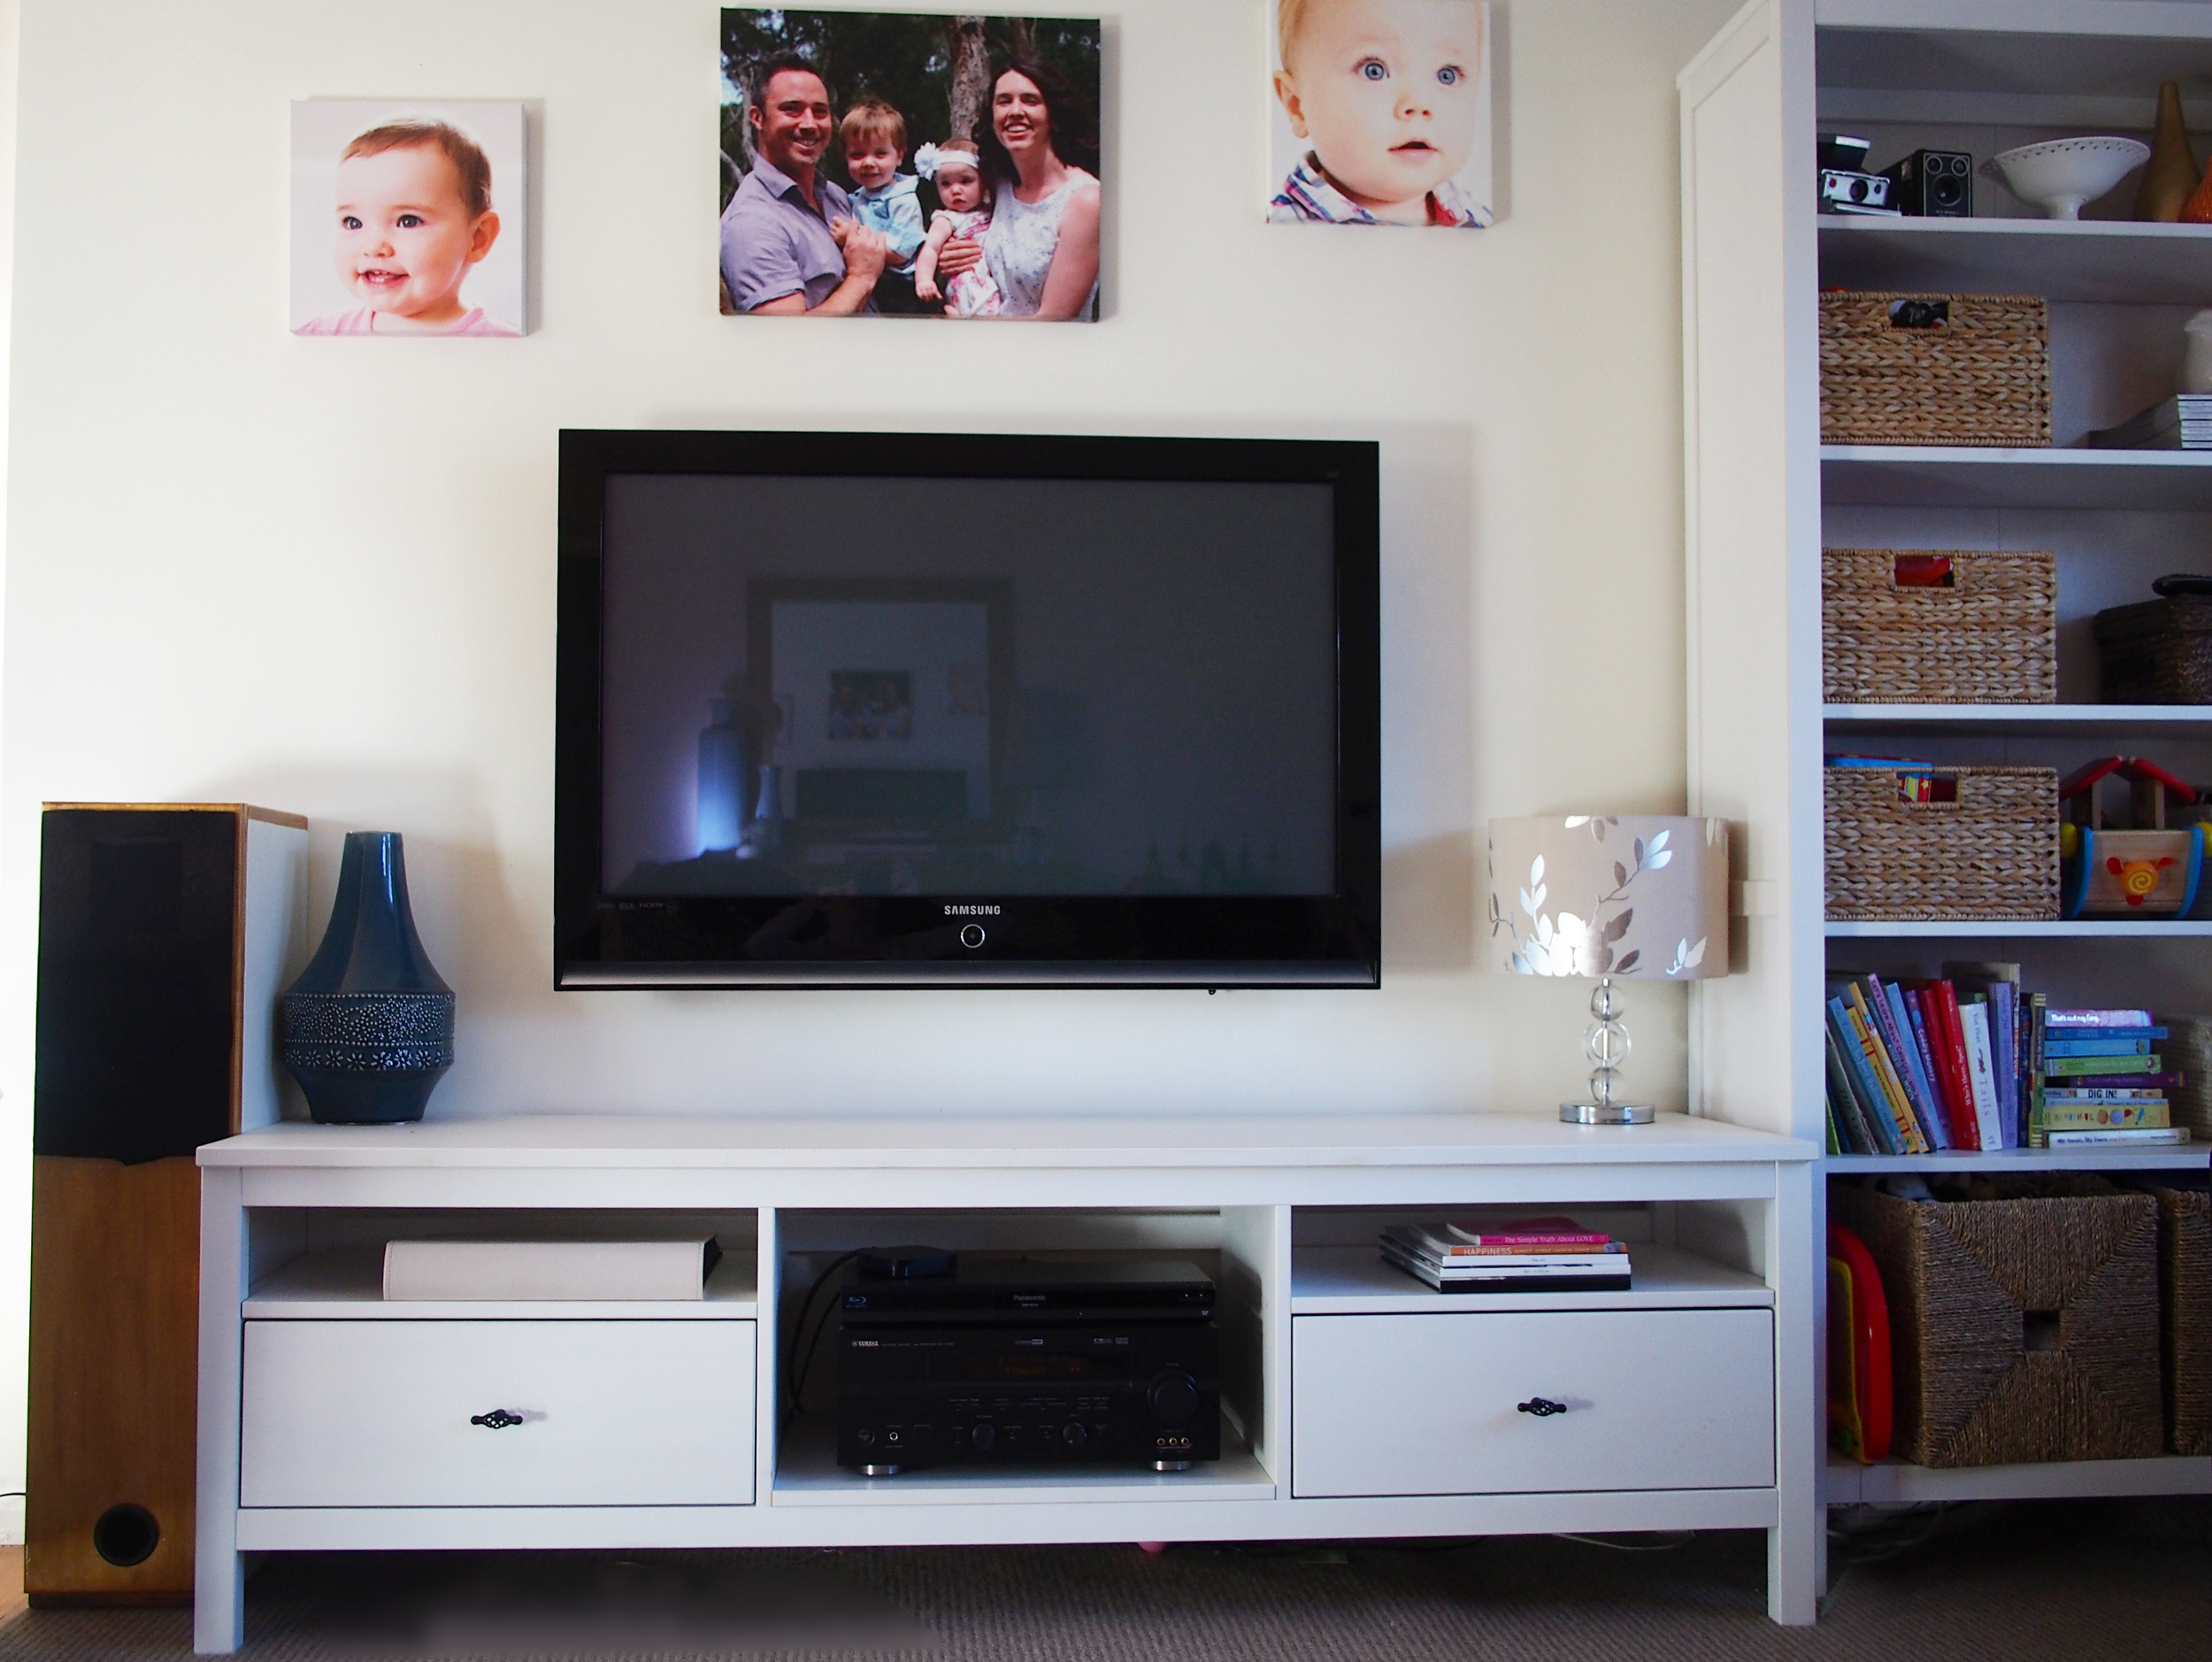 TV unit storage for puzzles and games